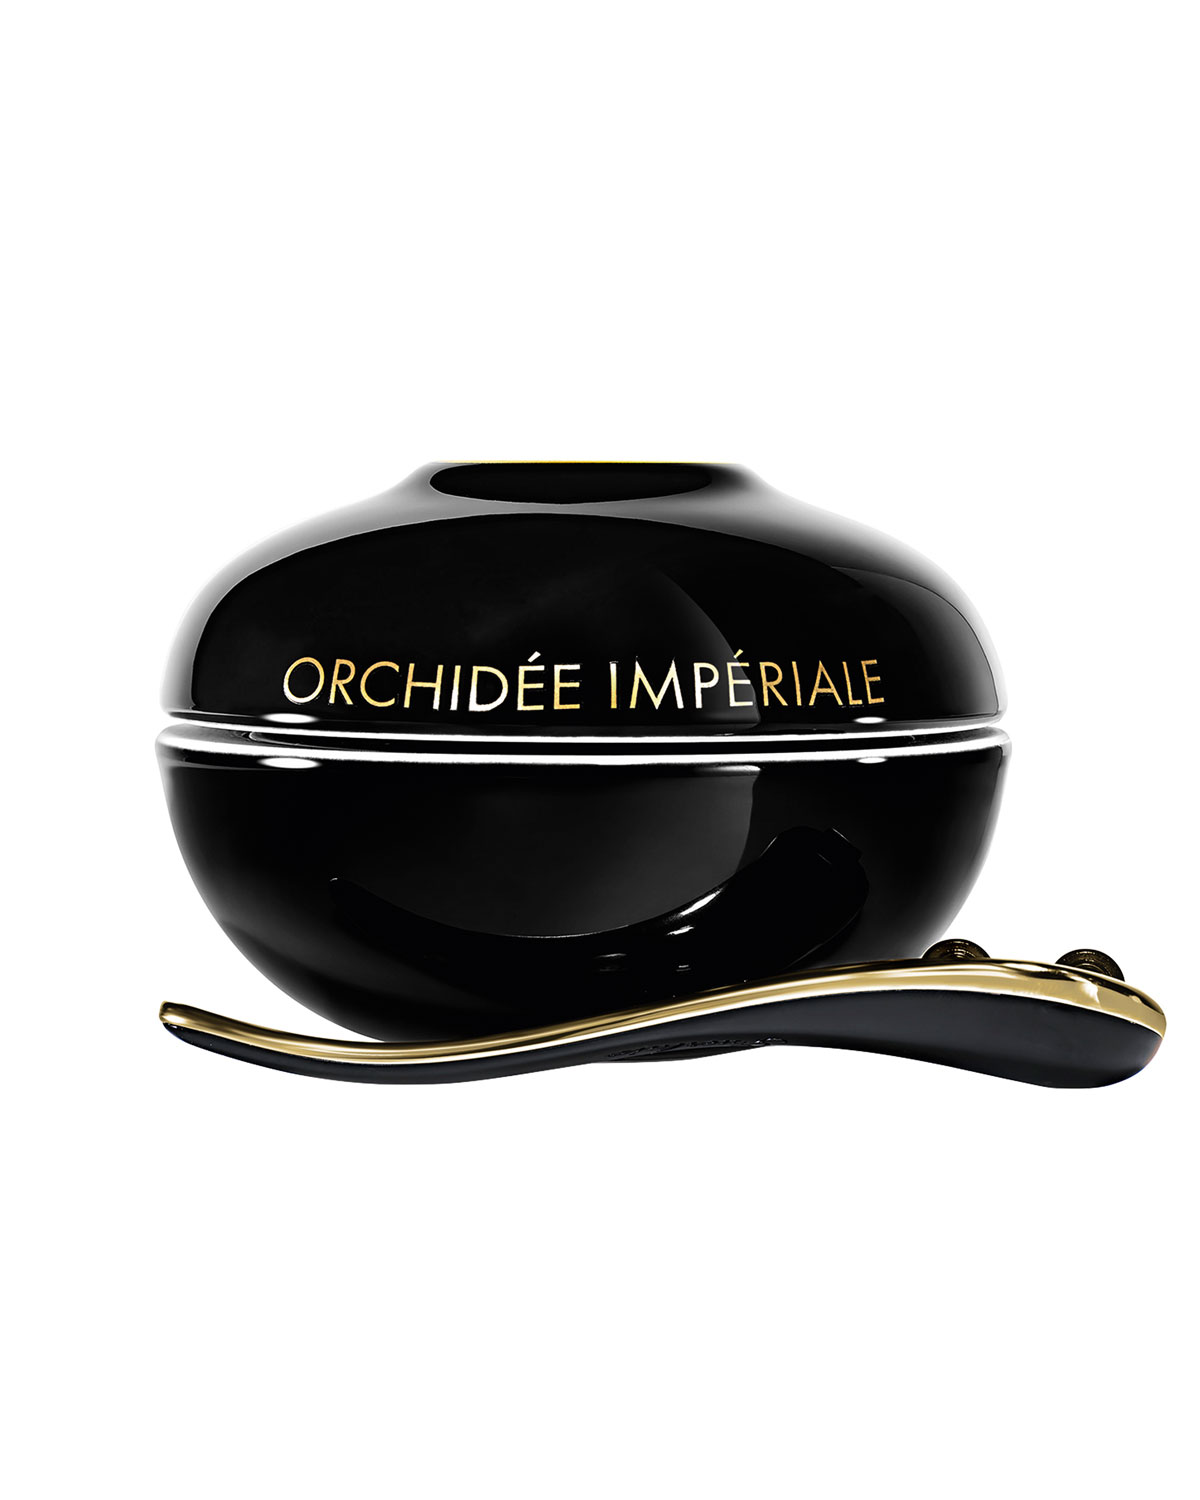 Guerlain ORCHIDEE IMPERIALE BLACK THE CREAM, 1.7 OZ./ 50 ML